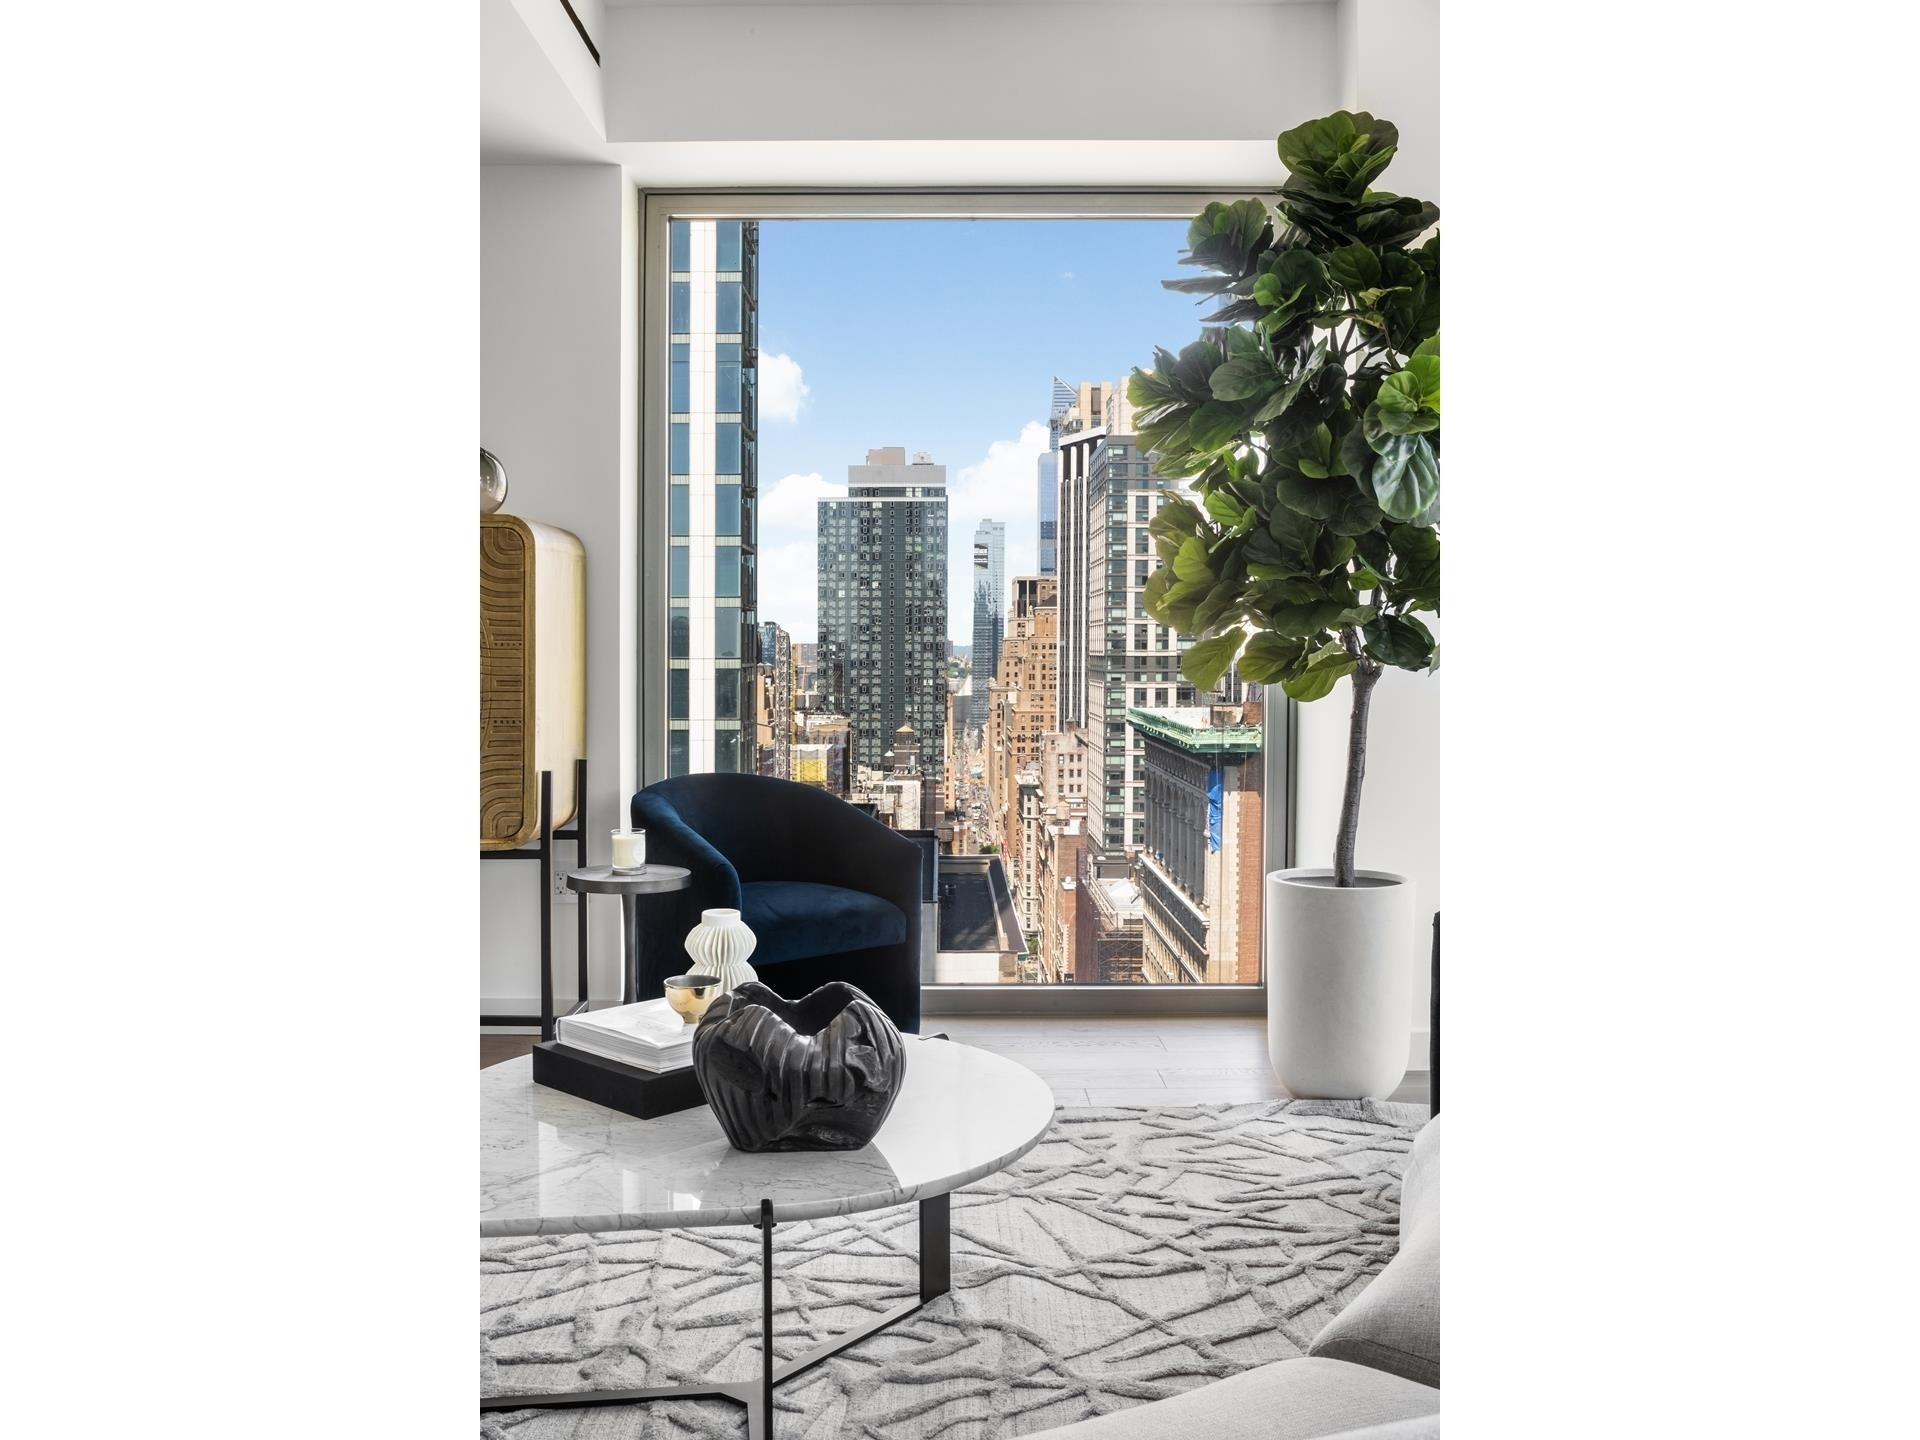 Property en 30 East 31st St, 19 NoMad, New York, NY 10016